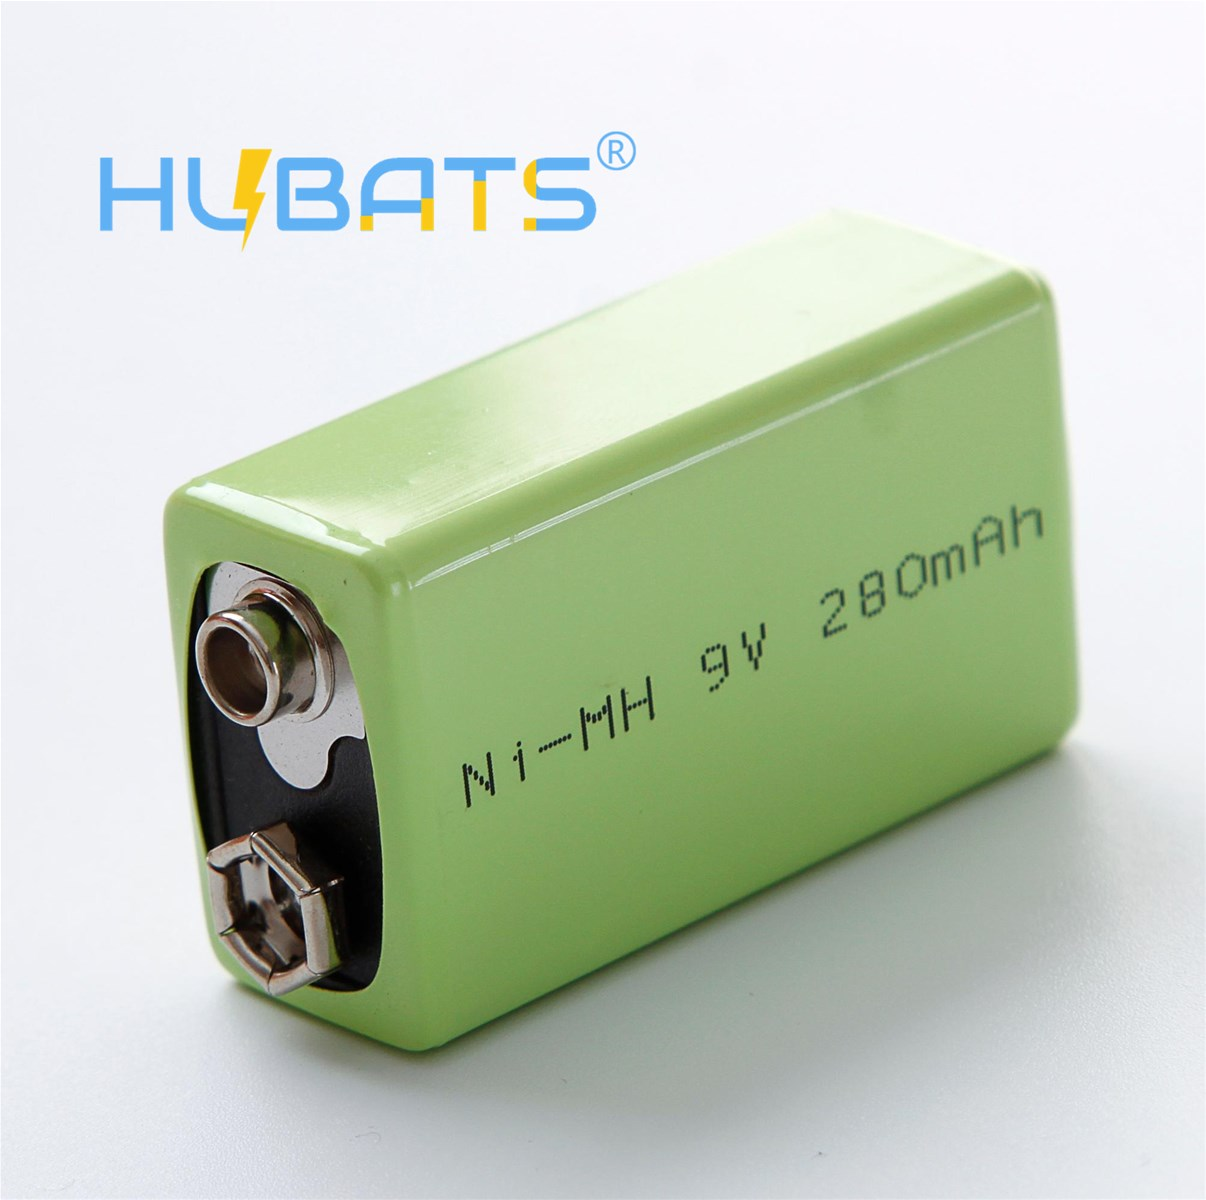 Hubats 9V 280mAh NiMH 9 Volt 280mah 6F22 Rechargeable Battery for Smoke Alarms Professional Audio